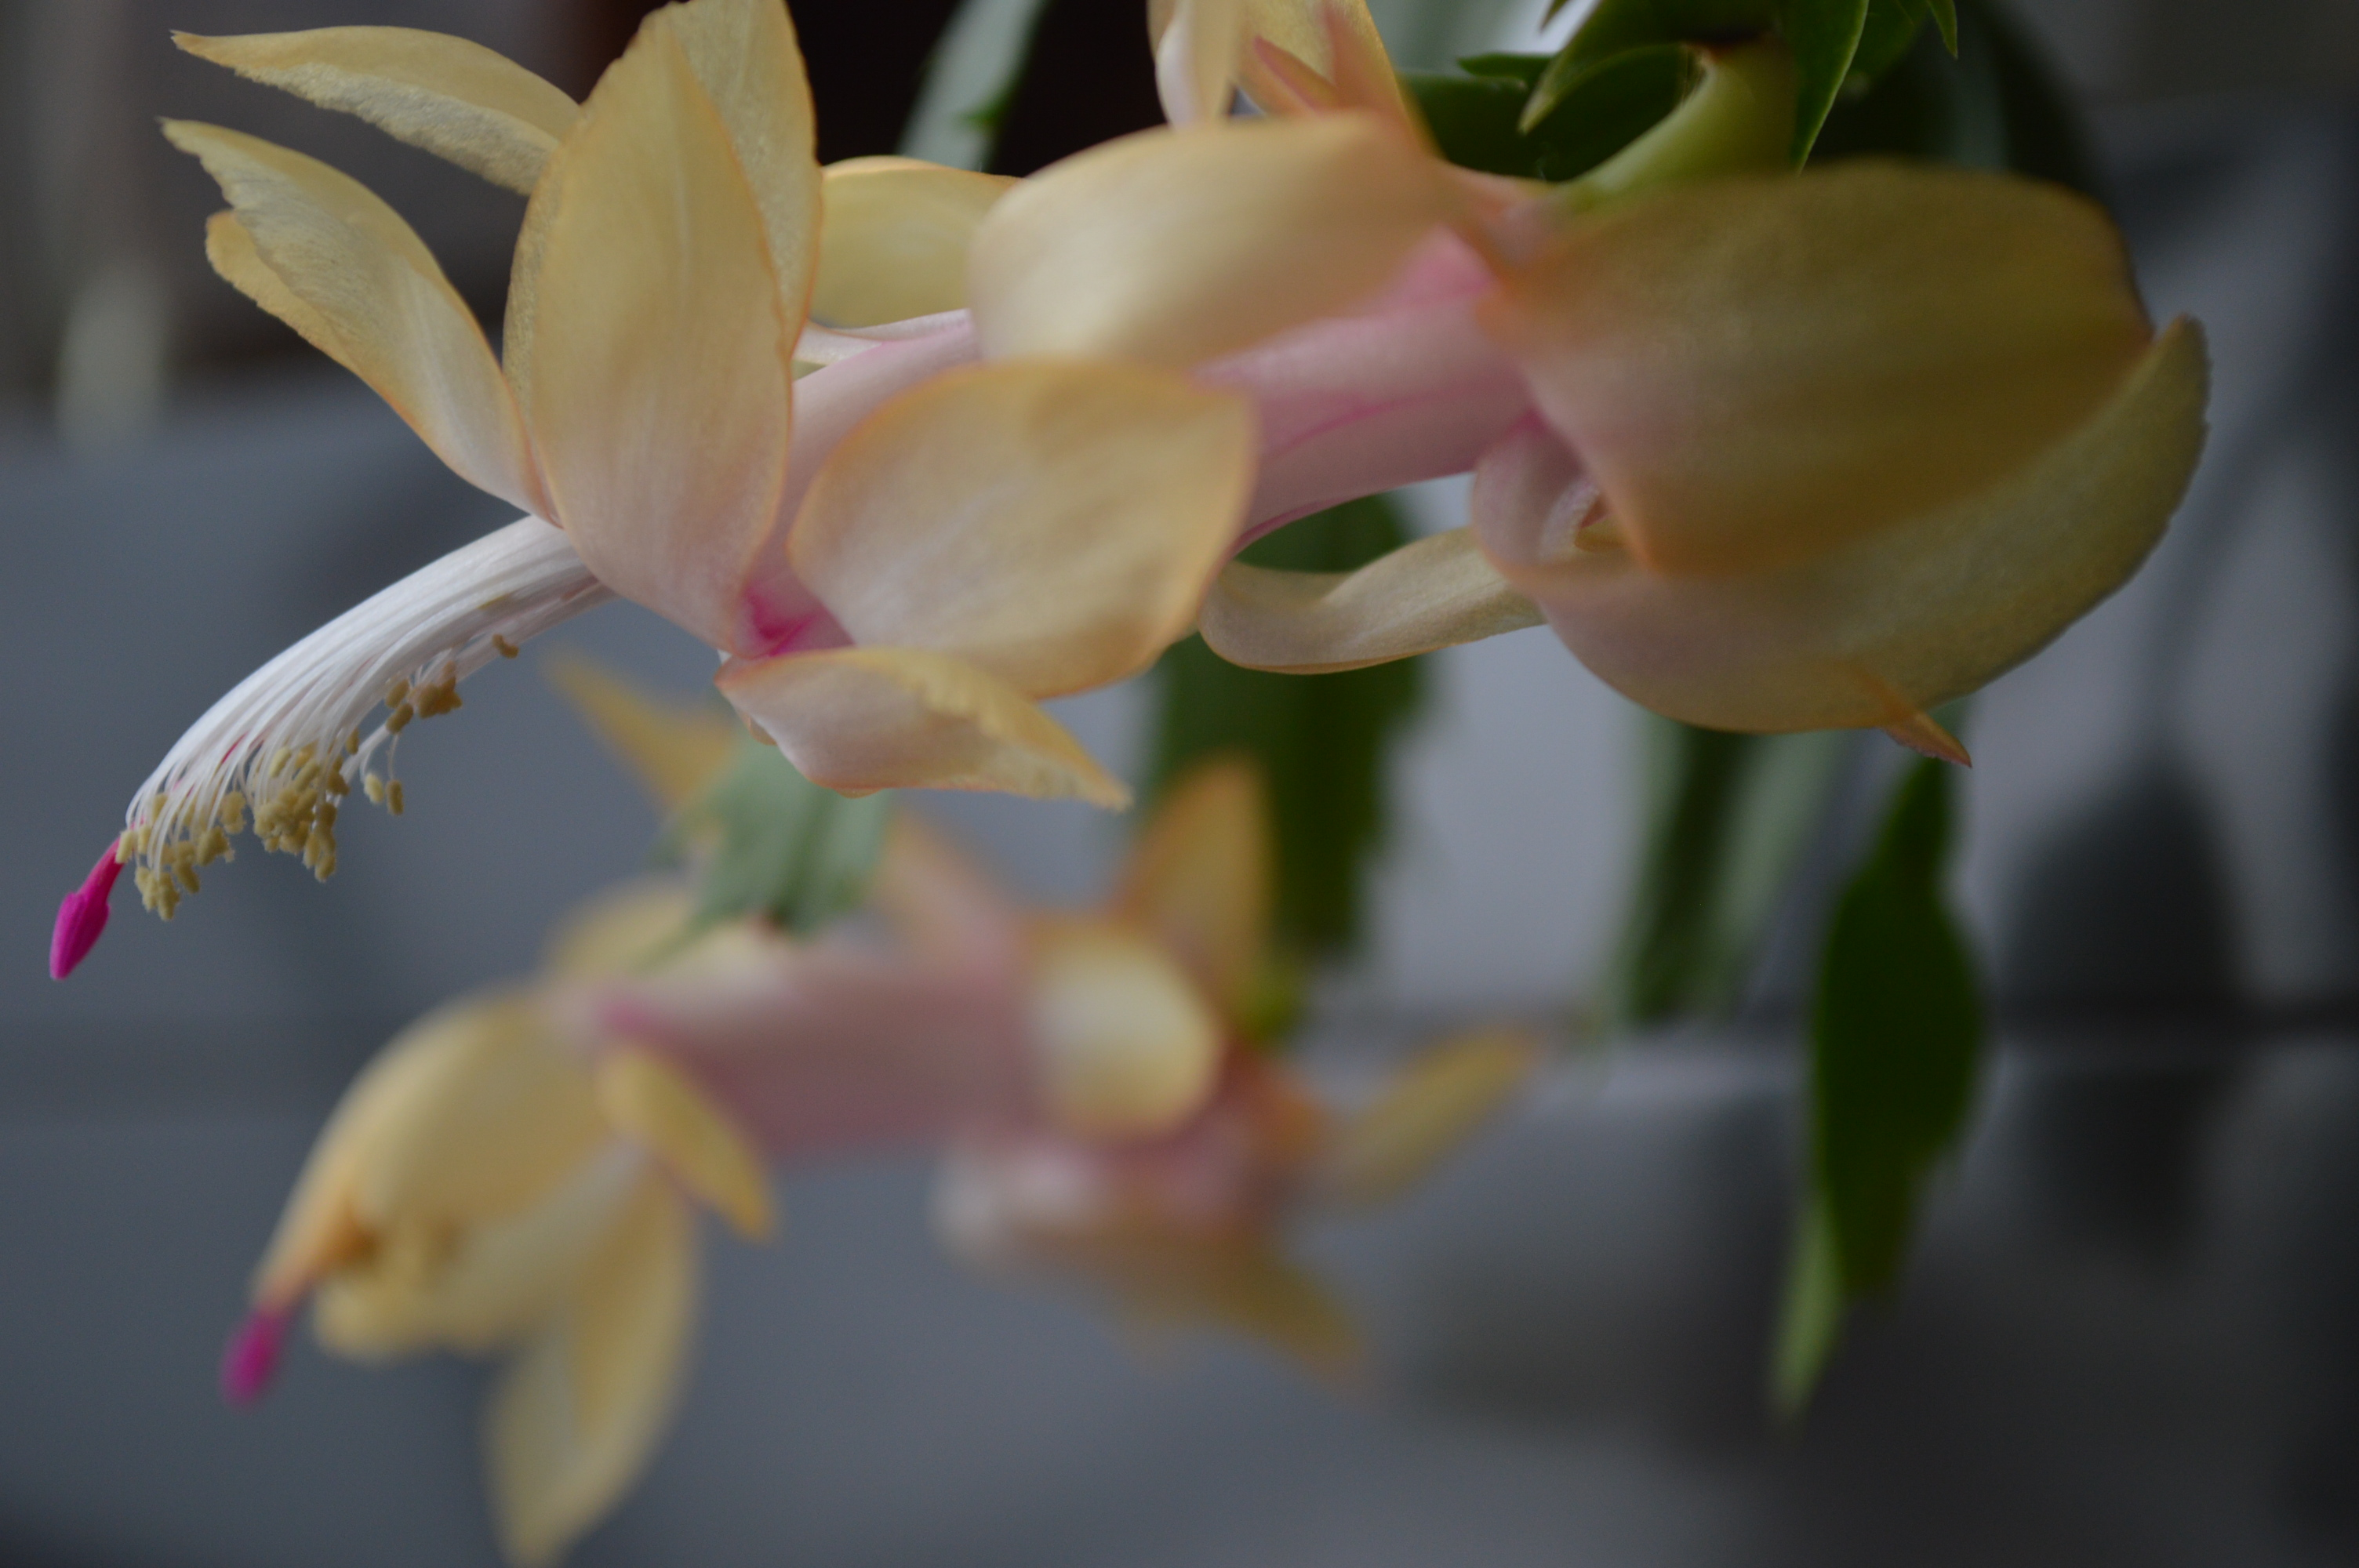 The Christmas cactus is considered a non-toxic plant. (photo/Cindy Hadish